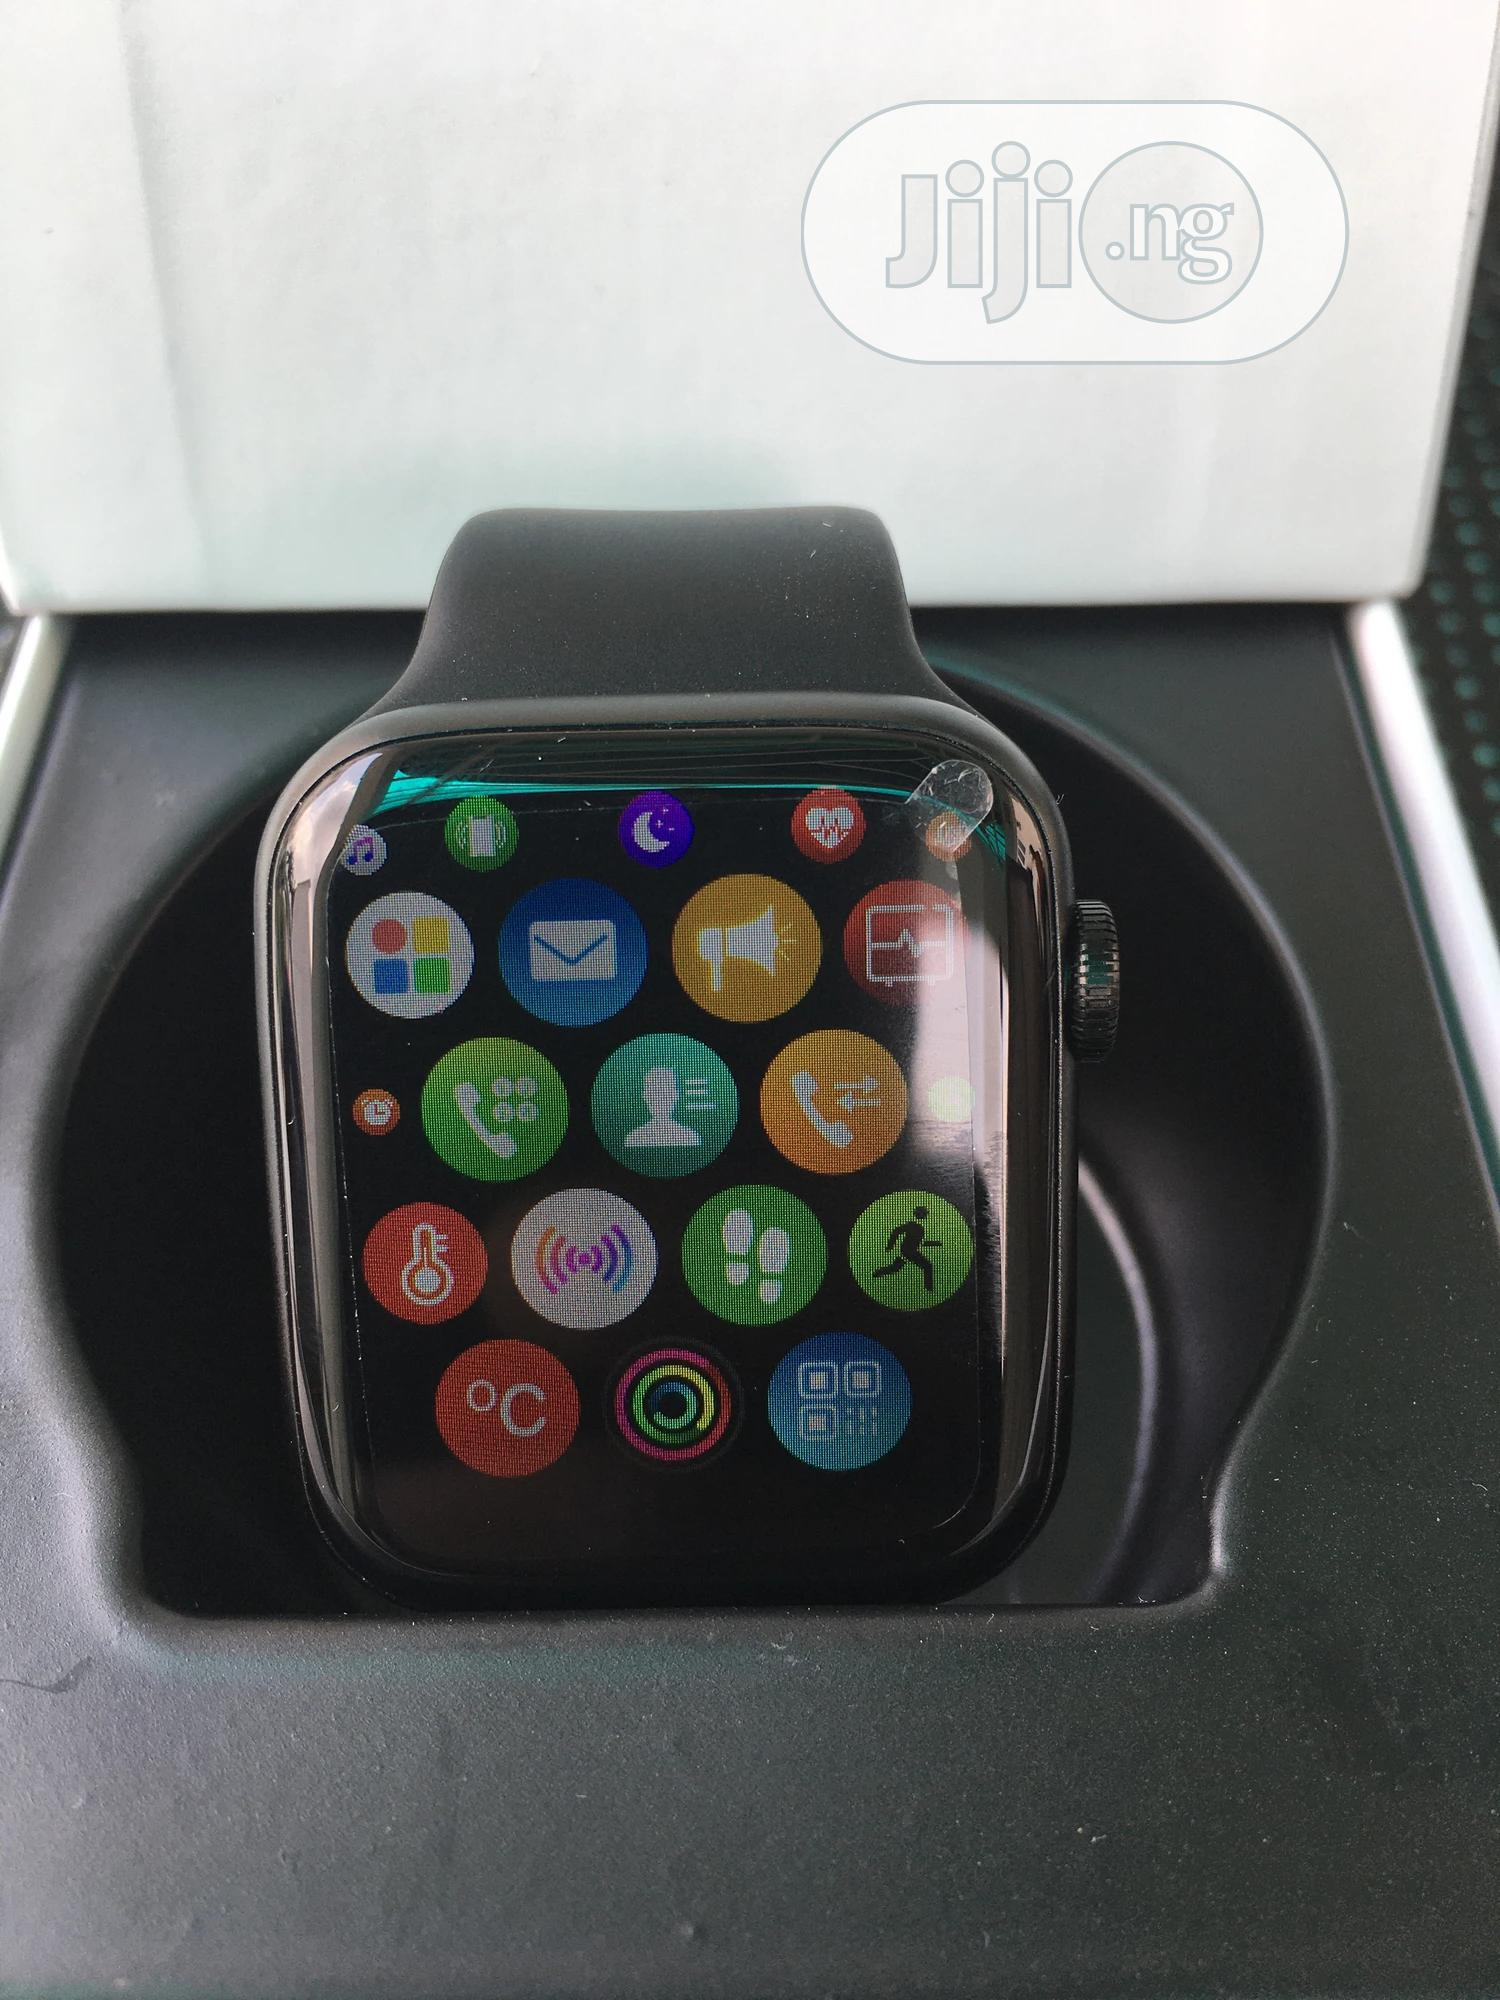 2020 Full Border-less Ios And Android Smart Watch | Smart Watches & Trackers for sale in Wuse 2, Abuja (FCT) State, Nigeria